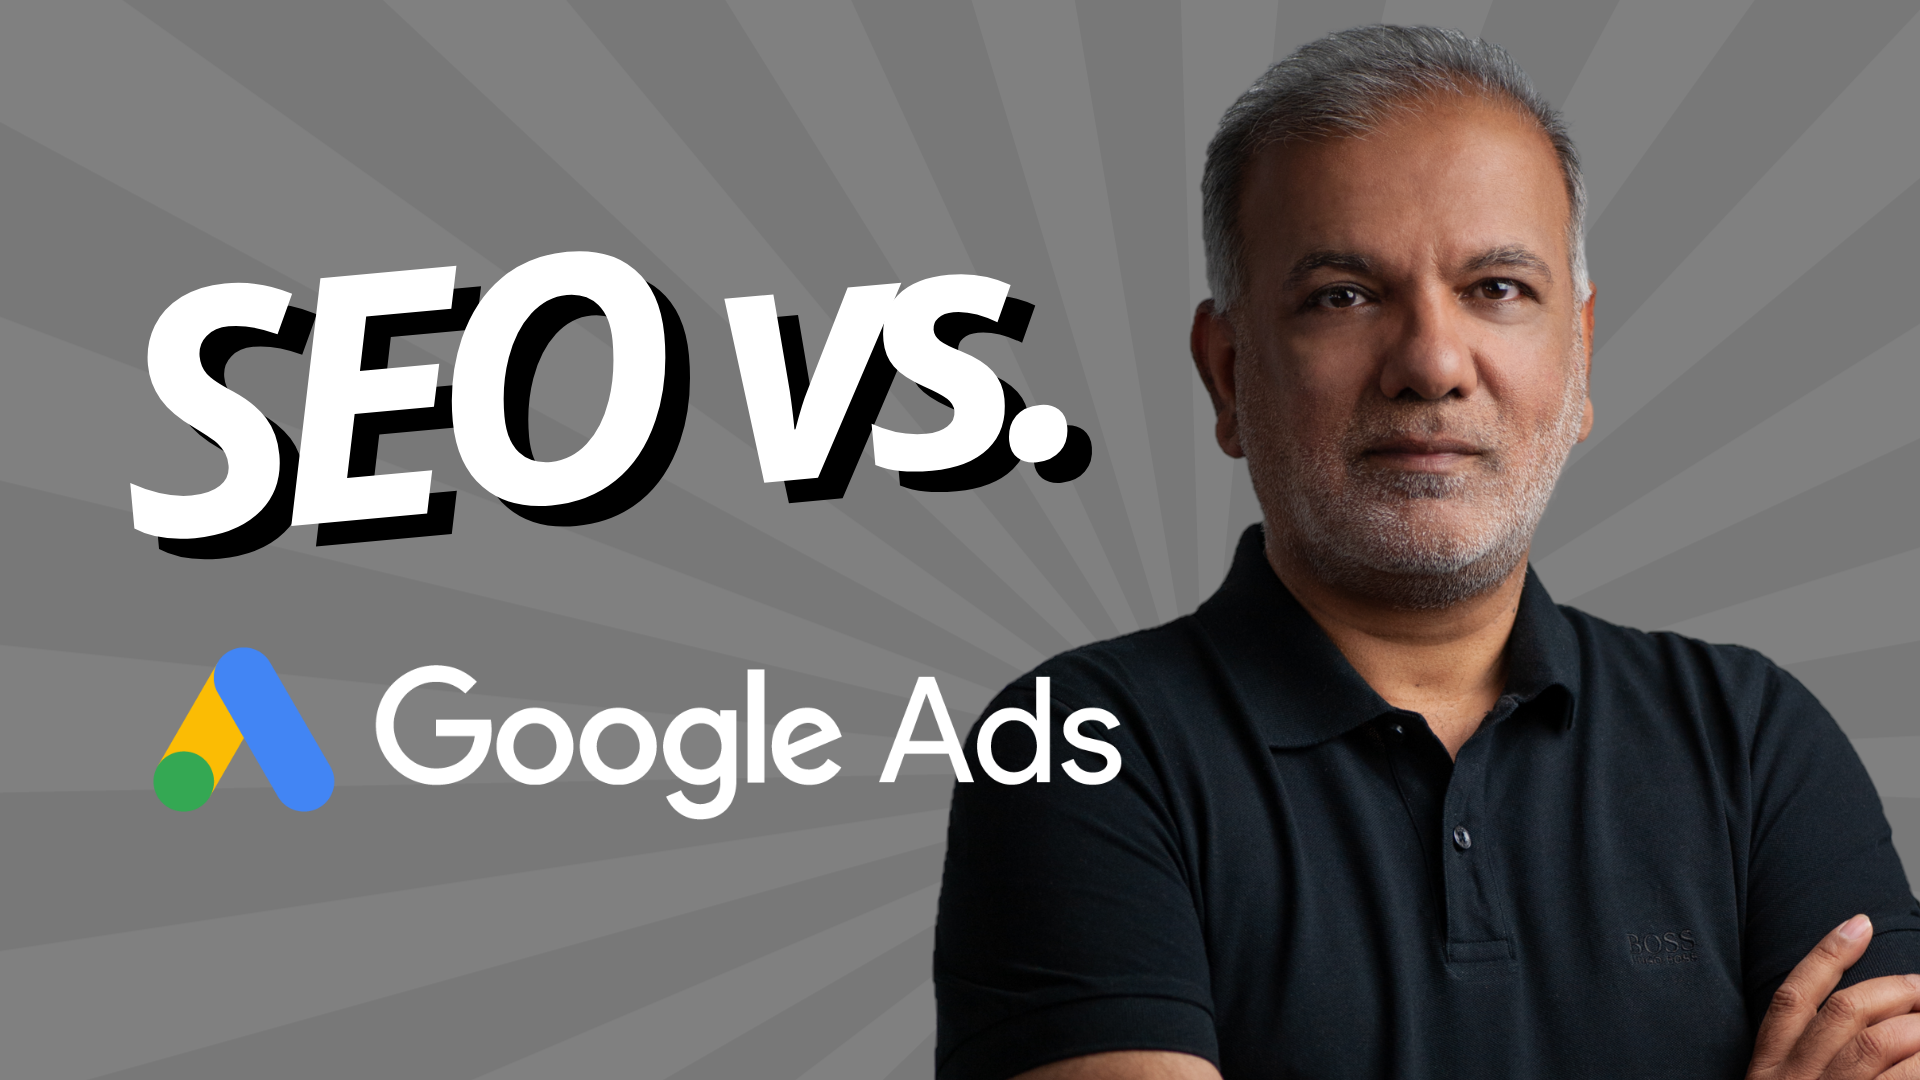 What Is The Difference Between SEO And Google Ads?